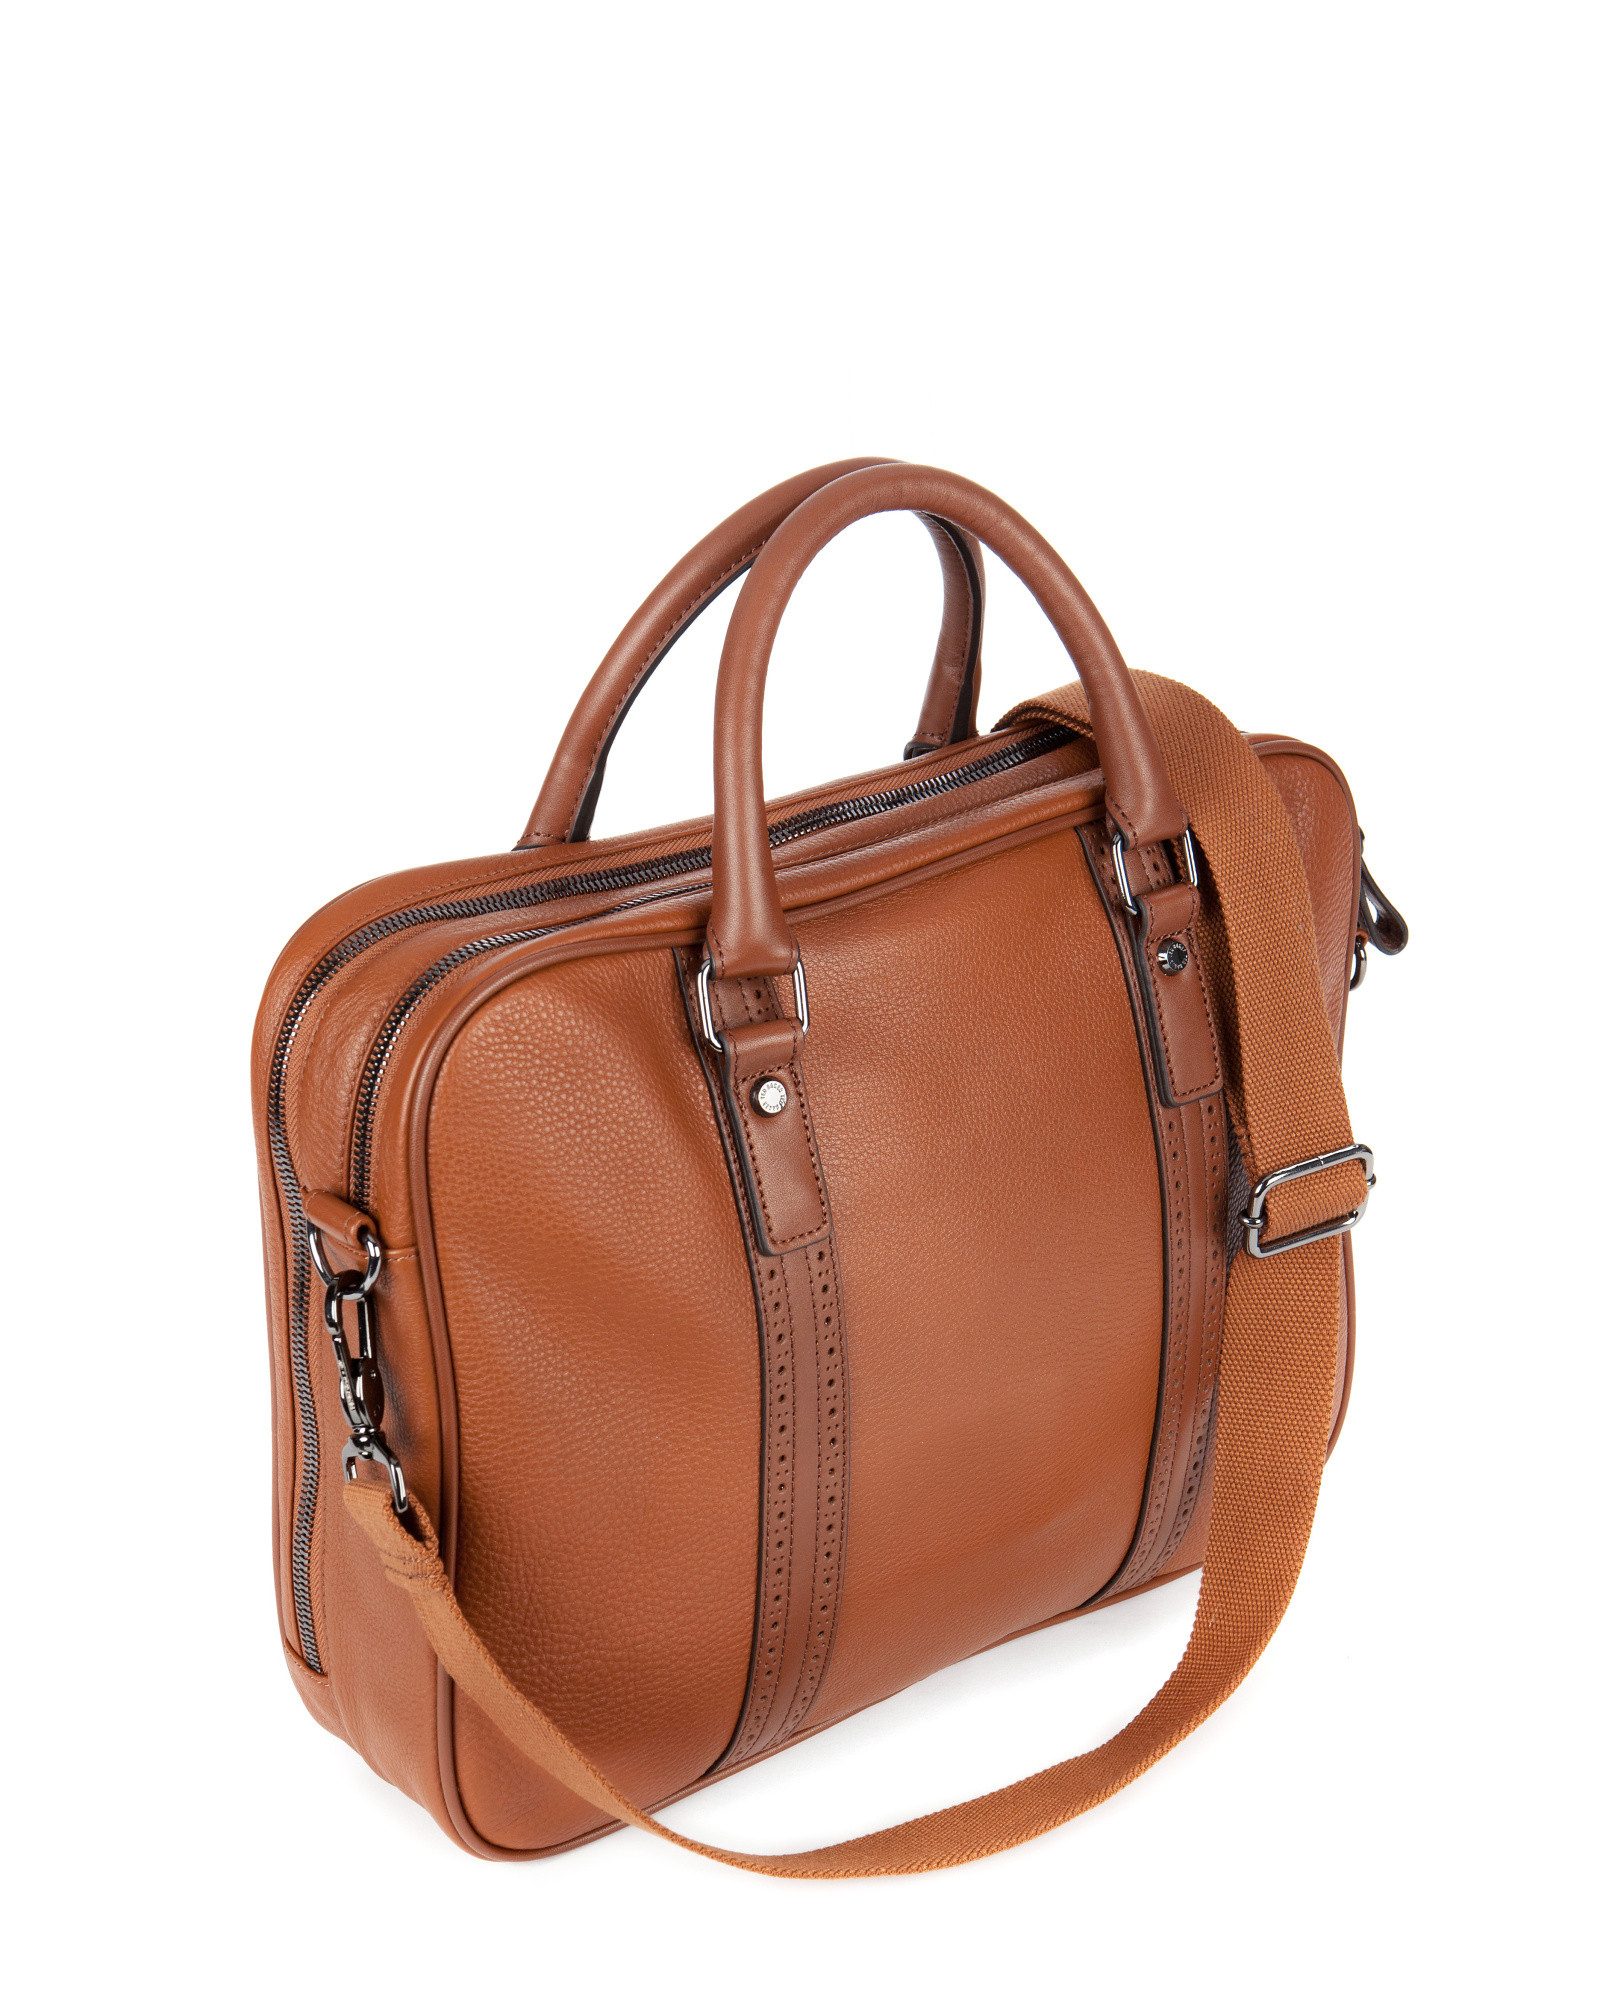 Ted baker leather document bag in brown for men lyst for Ted baker london leather document bag